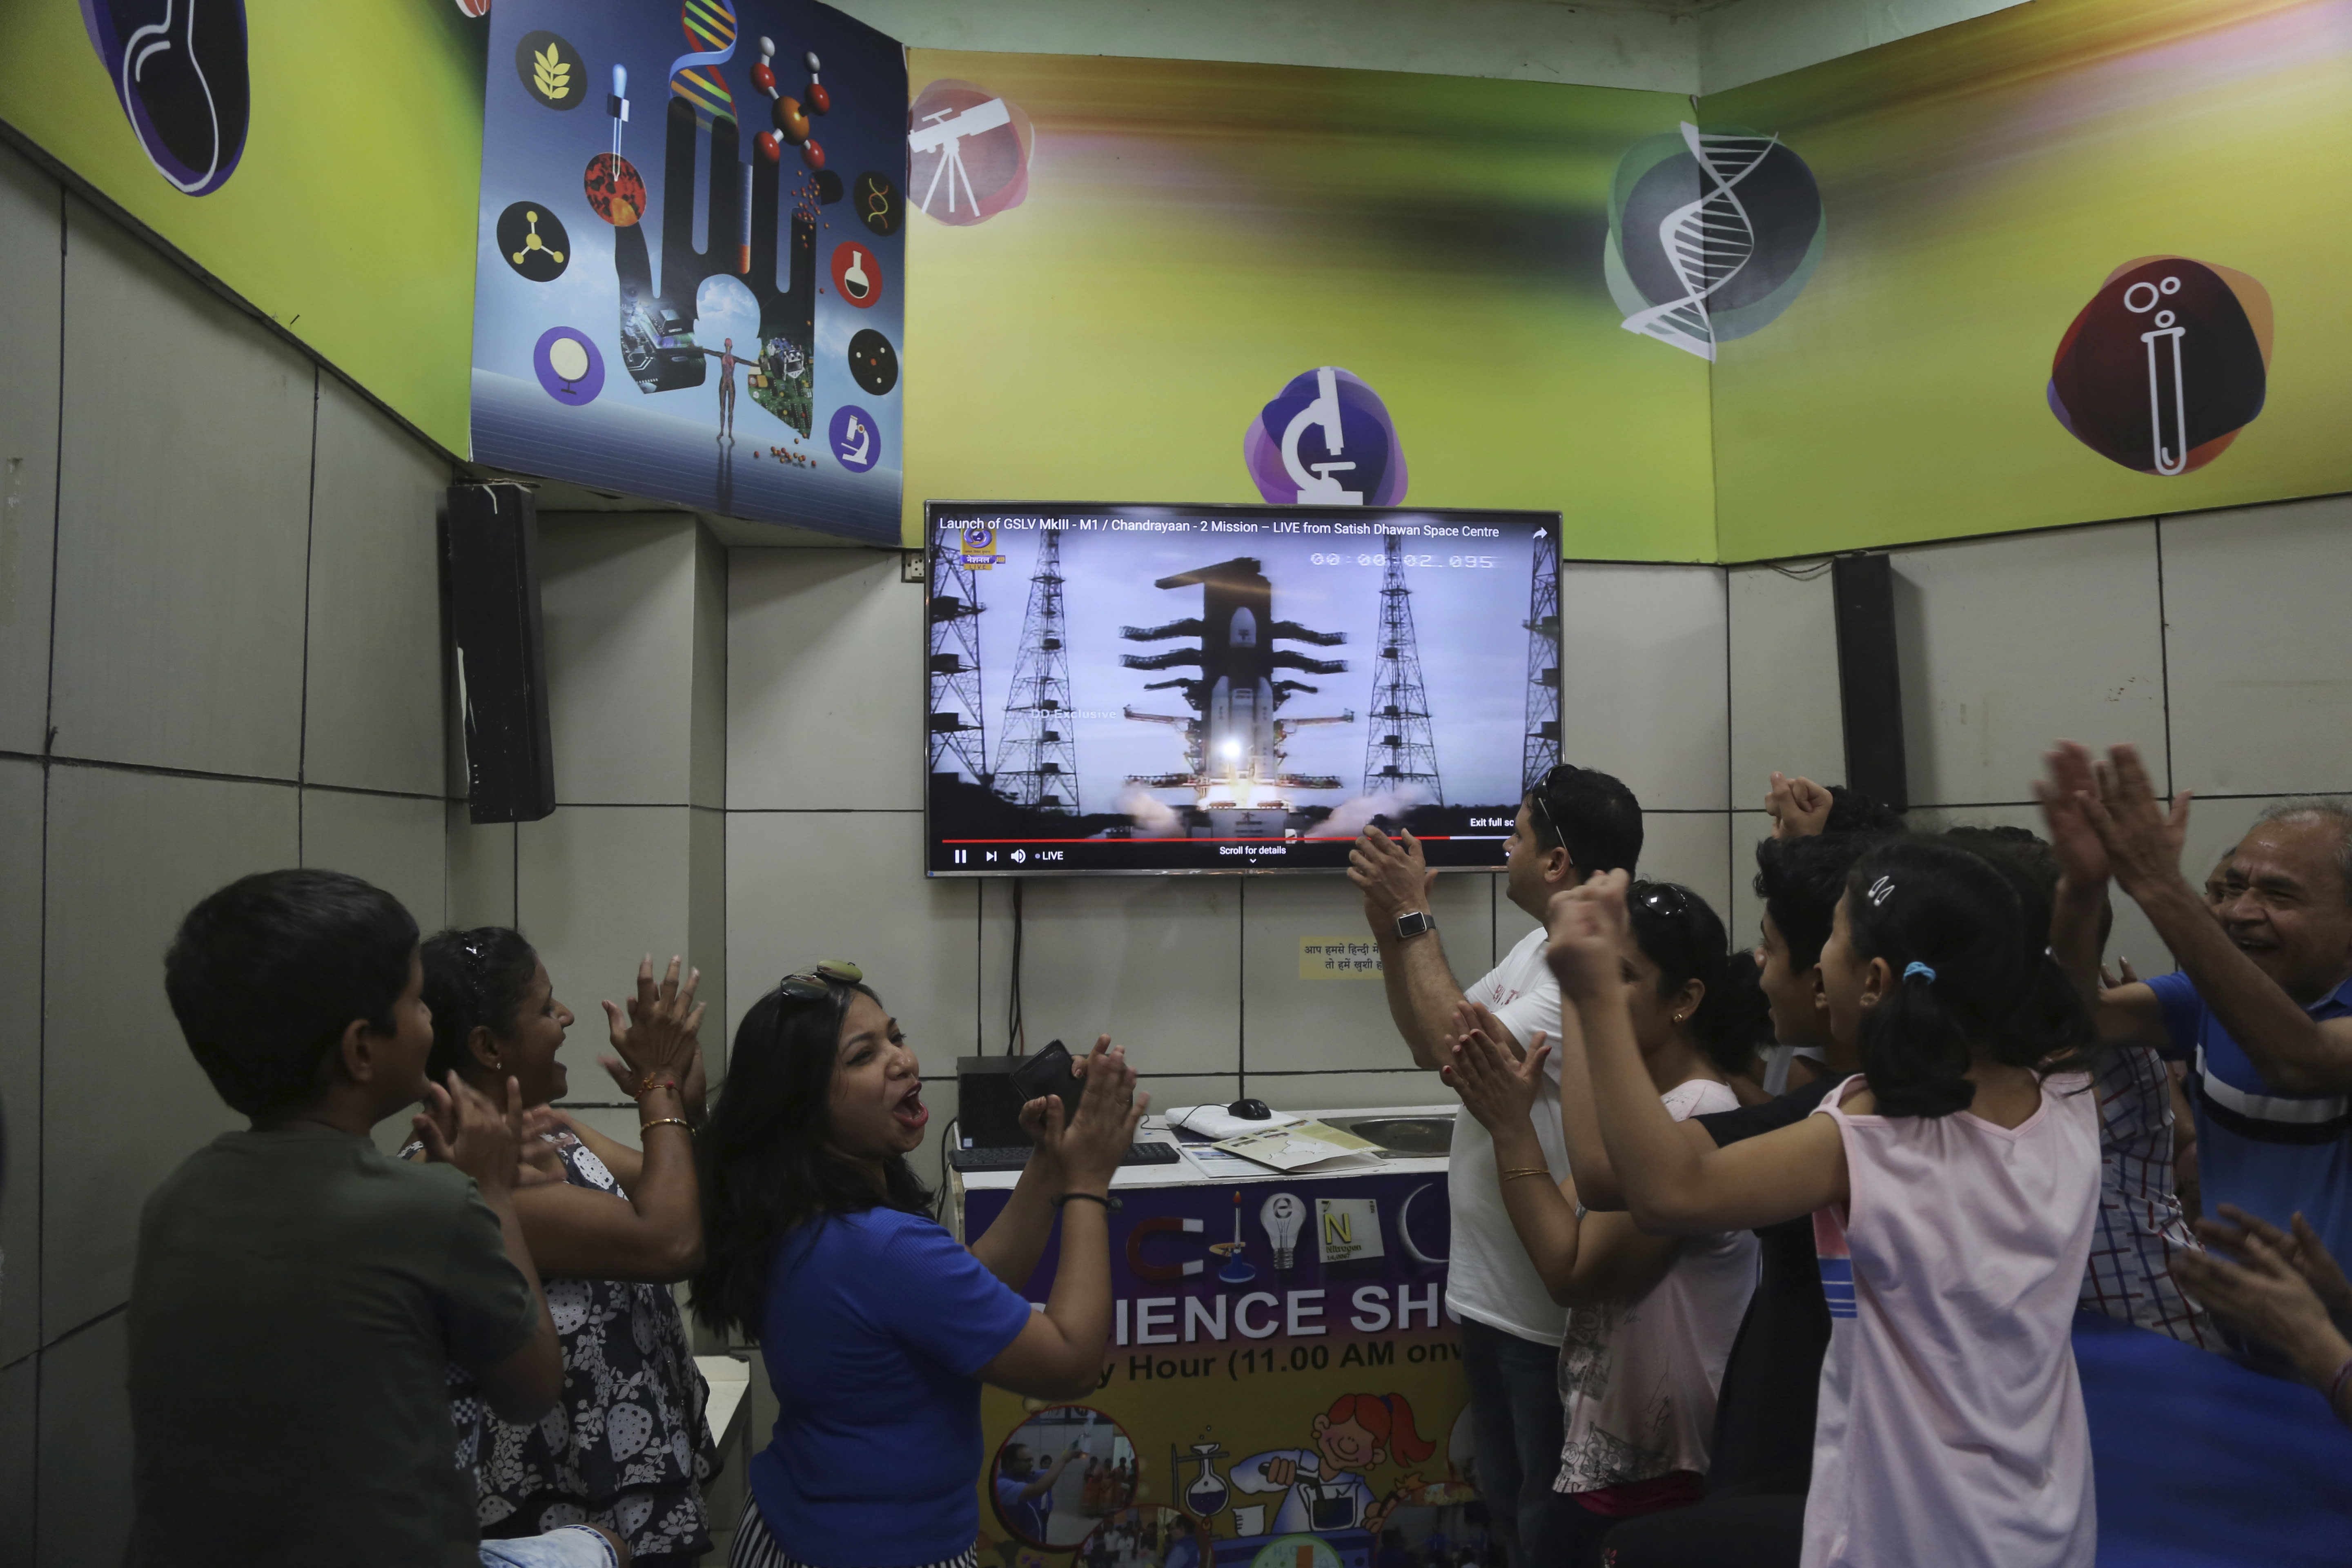 Indians cheer as they watch the on screen the lift off of Indian Space Research Organization (ISRO)'s Geosynchronous Satellite launch Vehicle (GSLV) MkIII carrying Chandrayaan-2 in Mumbai, India, Monday, July 22, 2019. India successfully launched an unmanned spacecraft to the far side of the moon on Monday, a week after aborting the mission due to a technical problem. (AP Photo/Rafiq Maqbool)